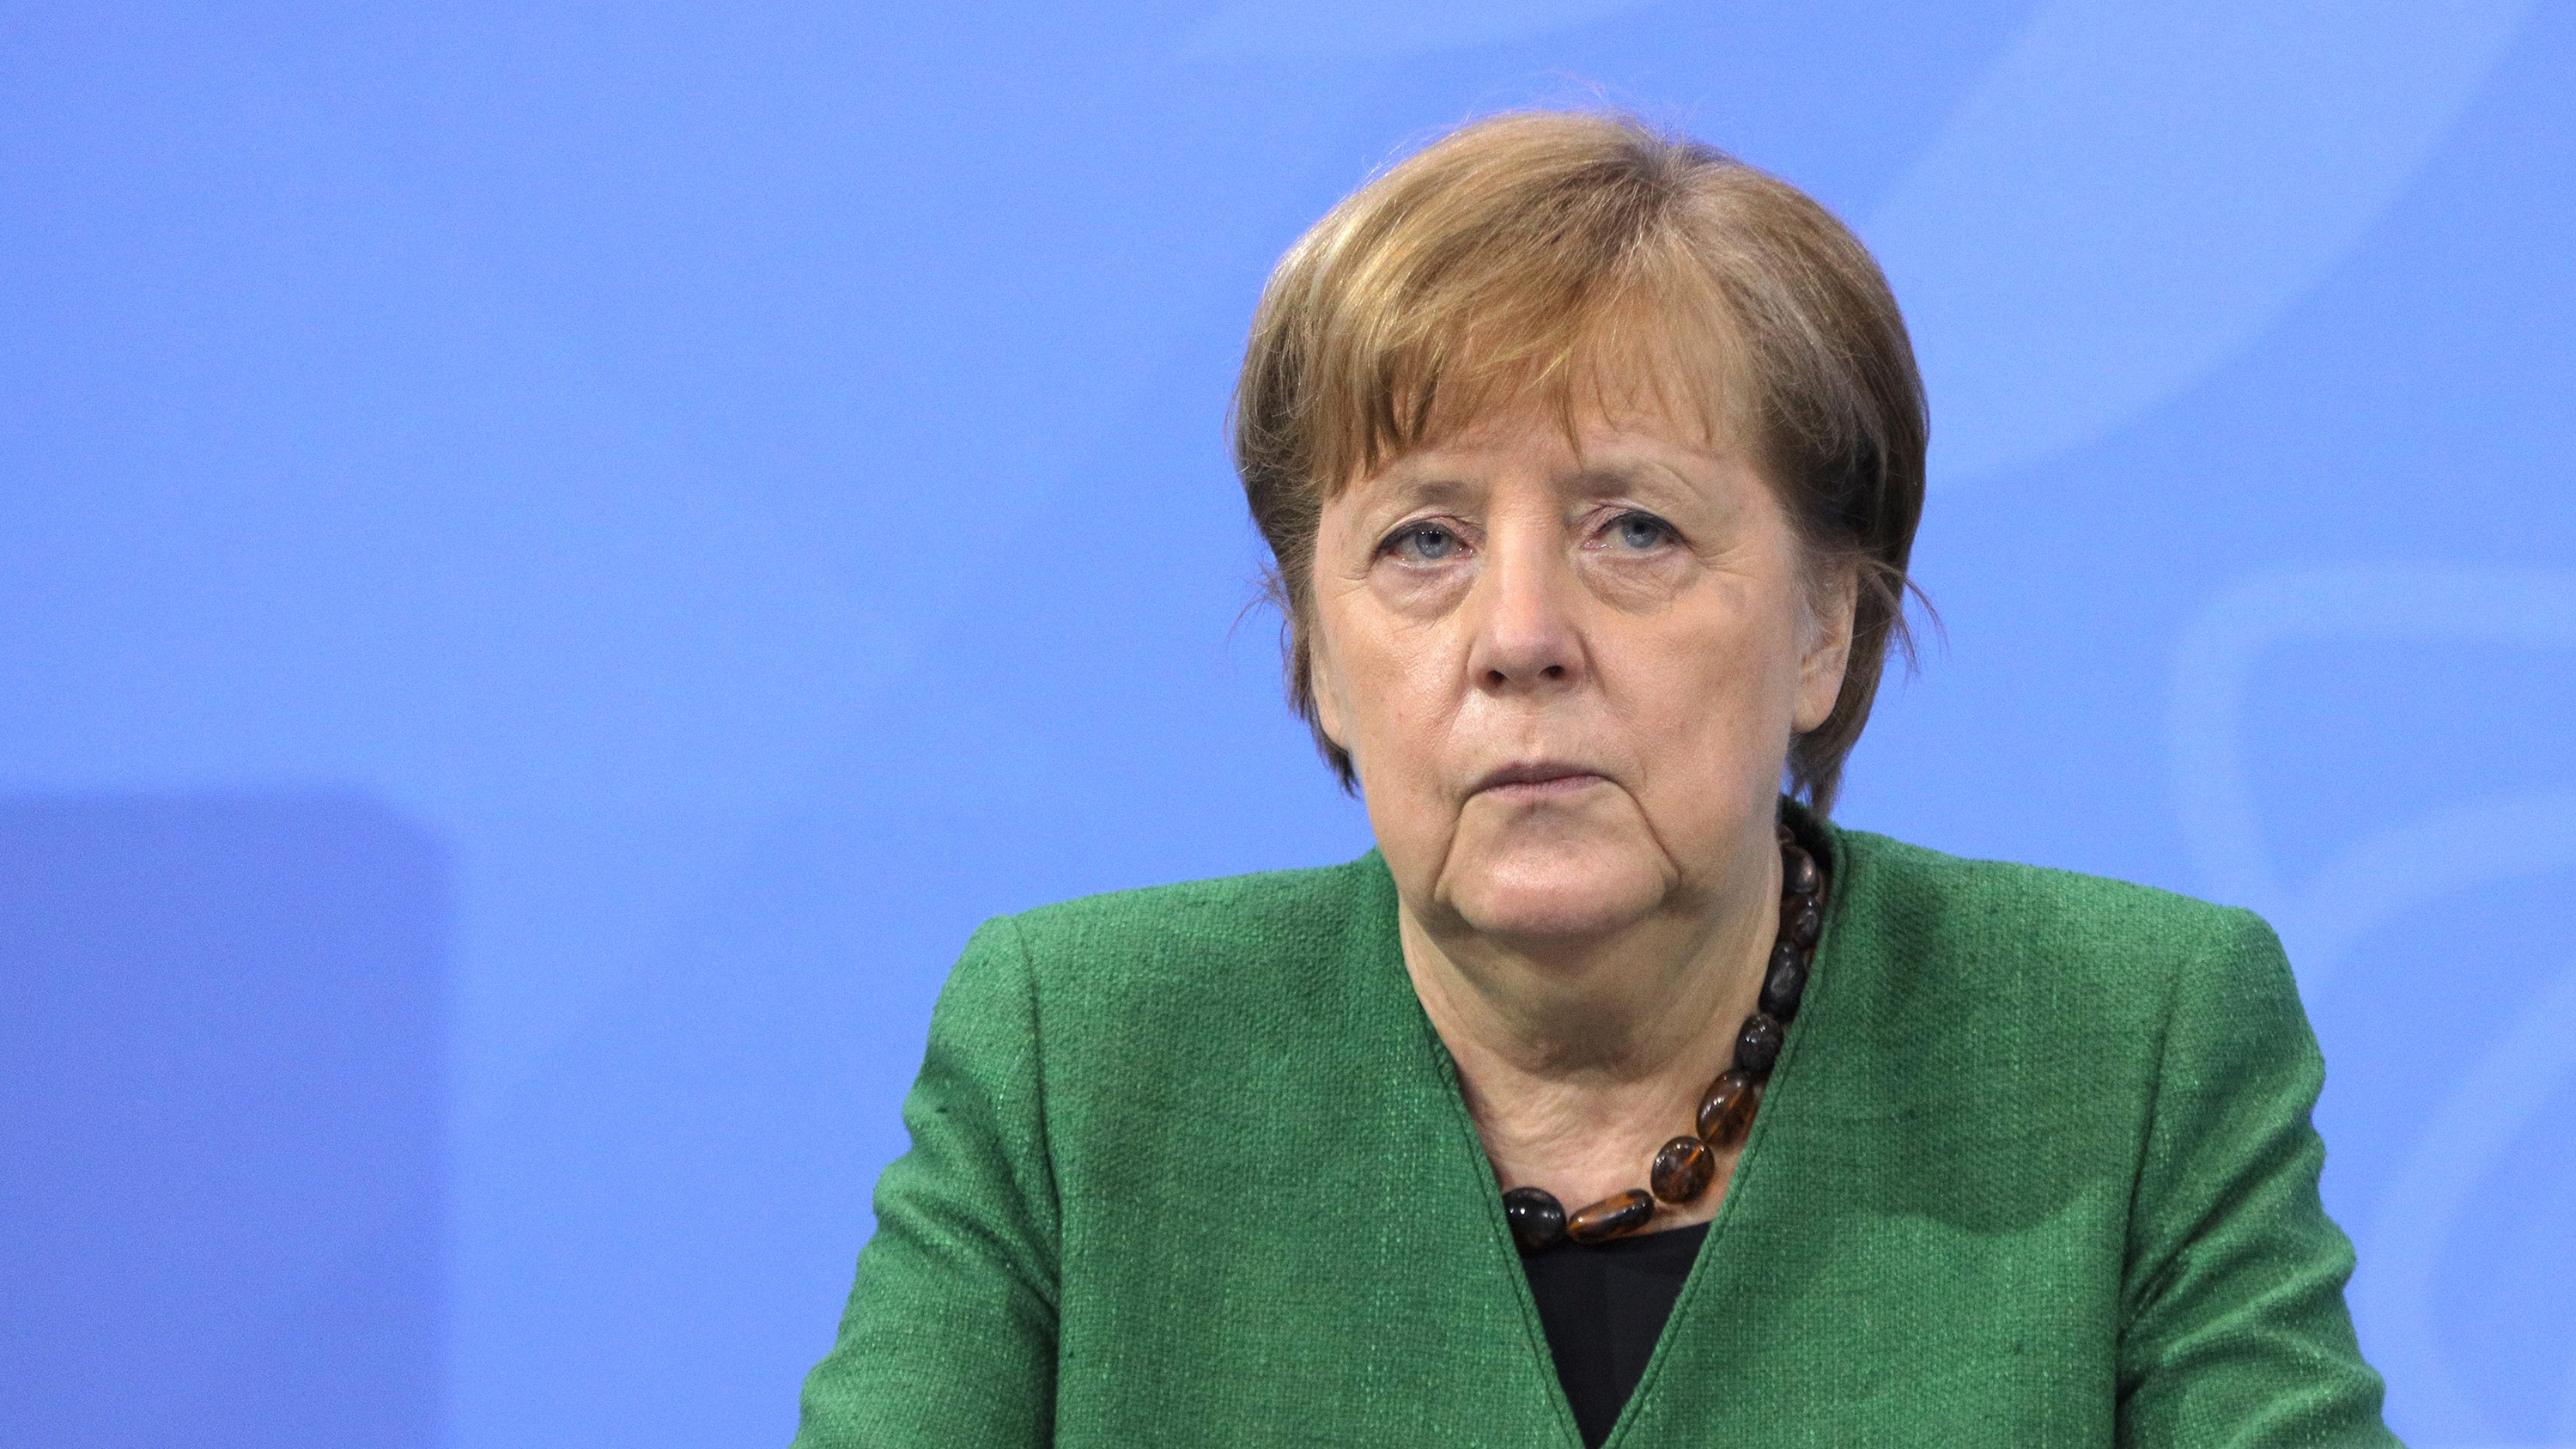 German Chancellor Angela Merkel attends a press conference on March 9, in Berlin, Germany.